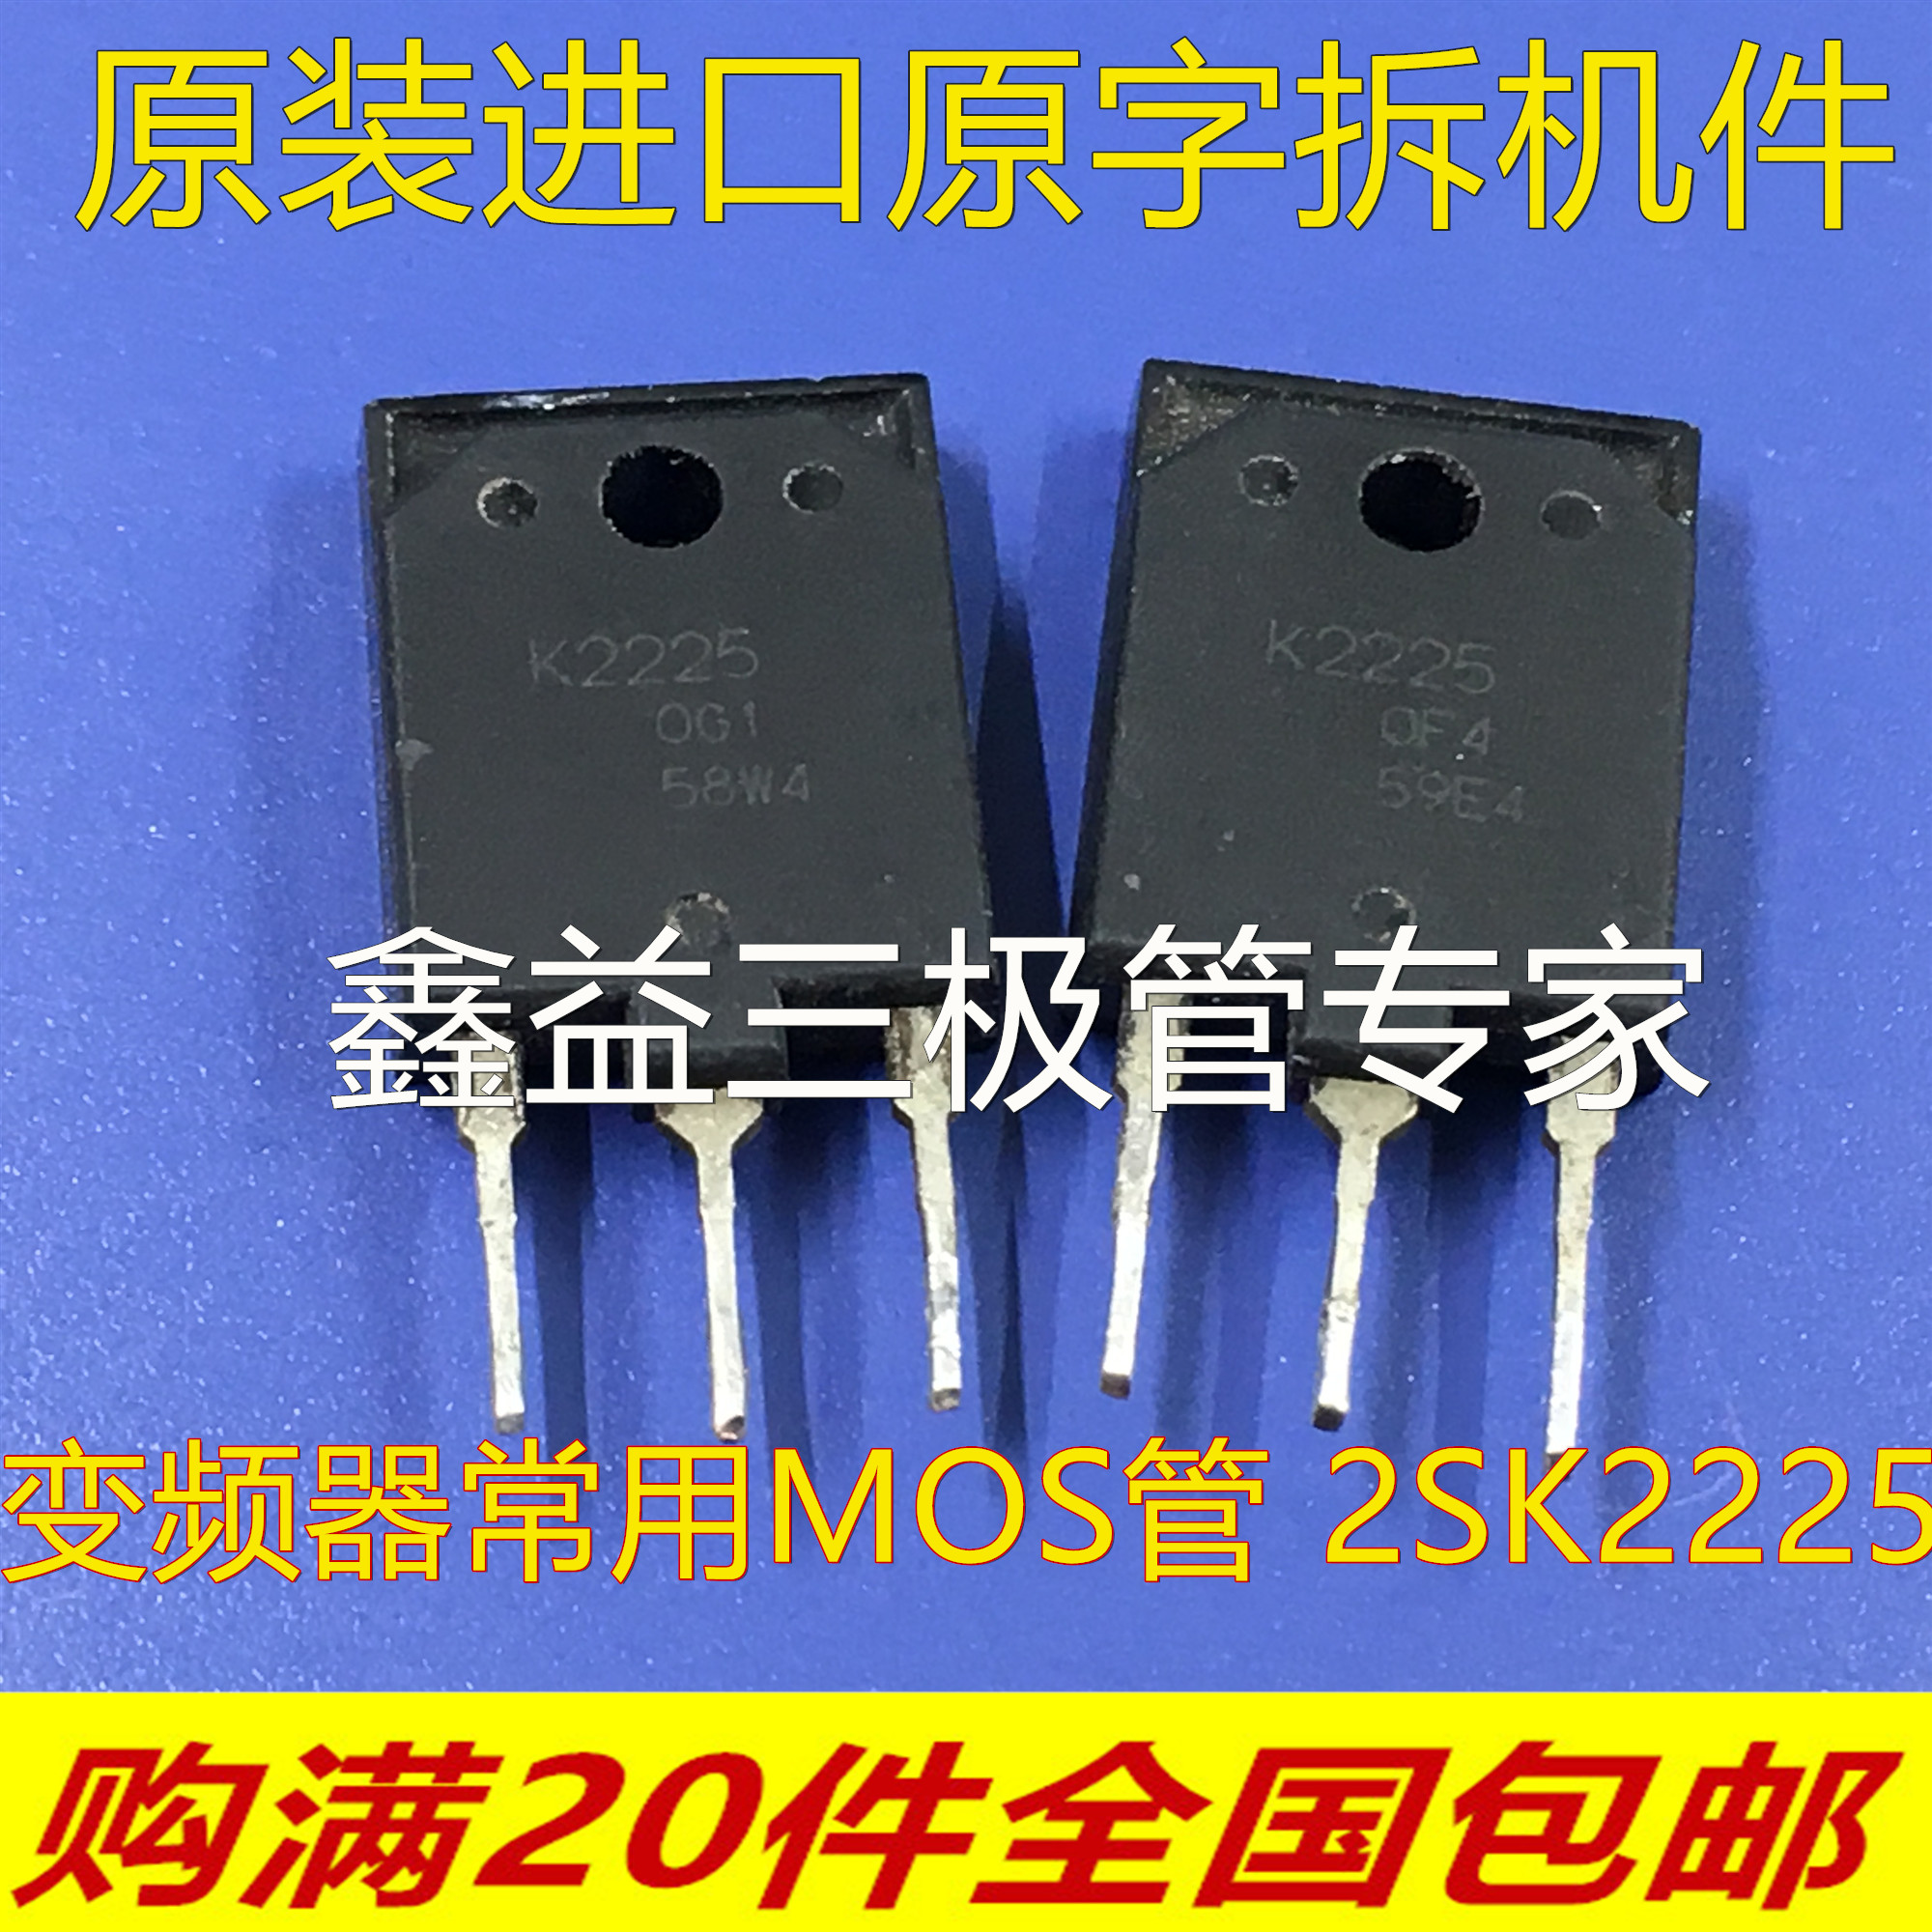 Usd 465 Original Disassemble The Word 2sk2225 K2225 Pin Igbt Circuit Of Welding Equipment China Arc Welders For Sale On Machine Inverter Commonly Used Mos Fet Can Shoot